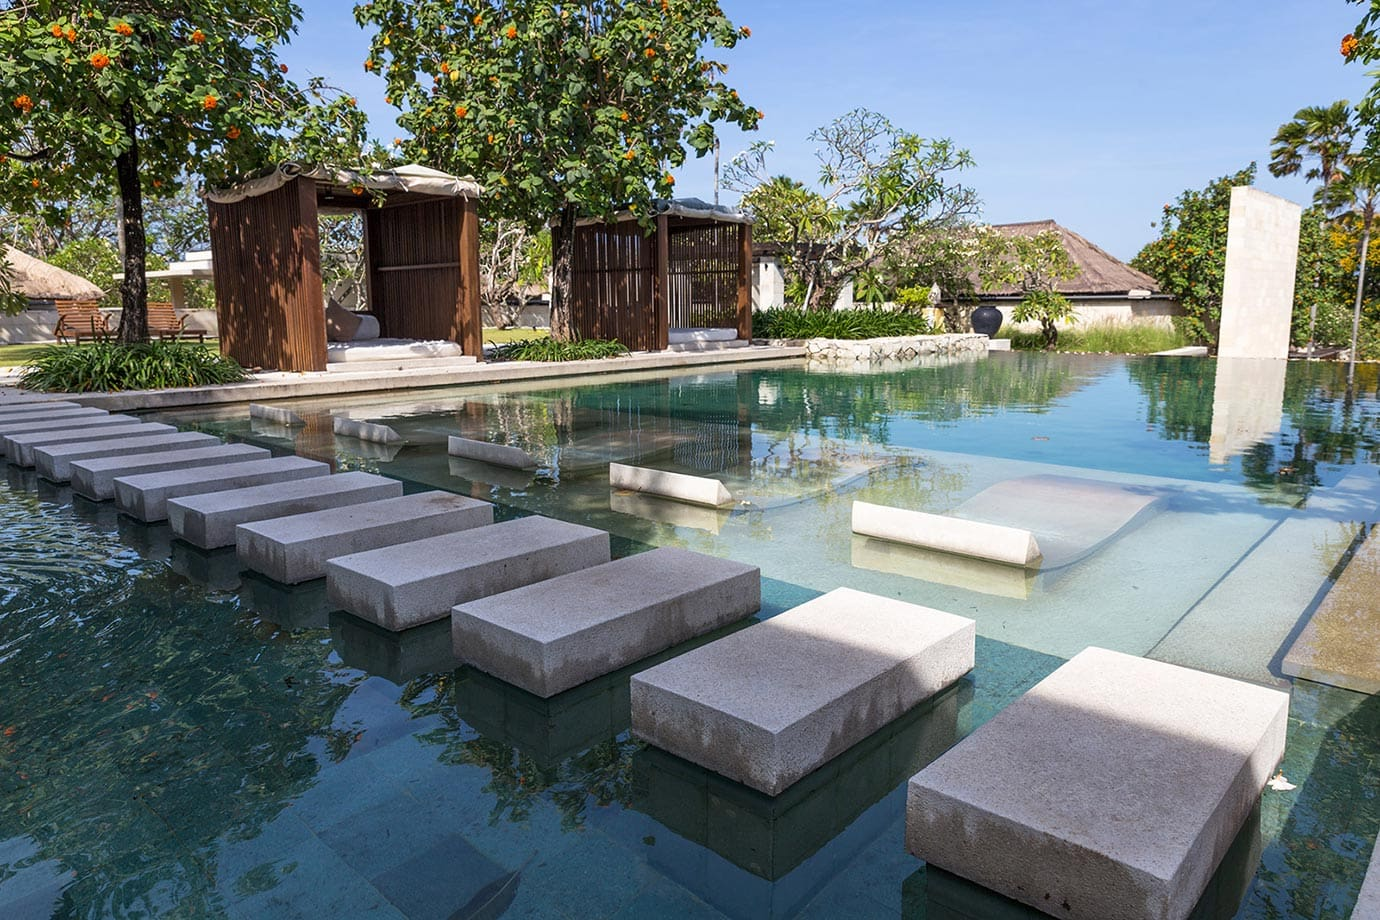 The infinity pool at The Bale